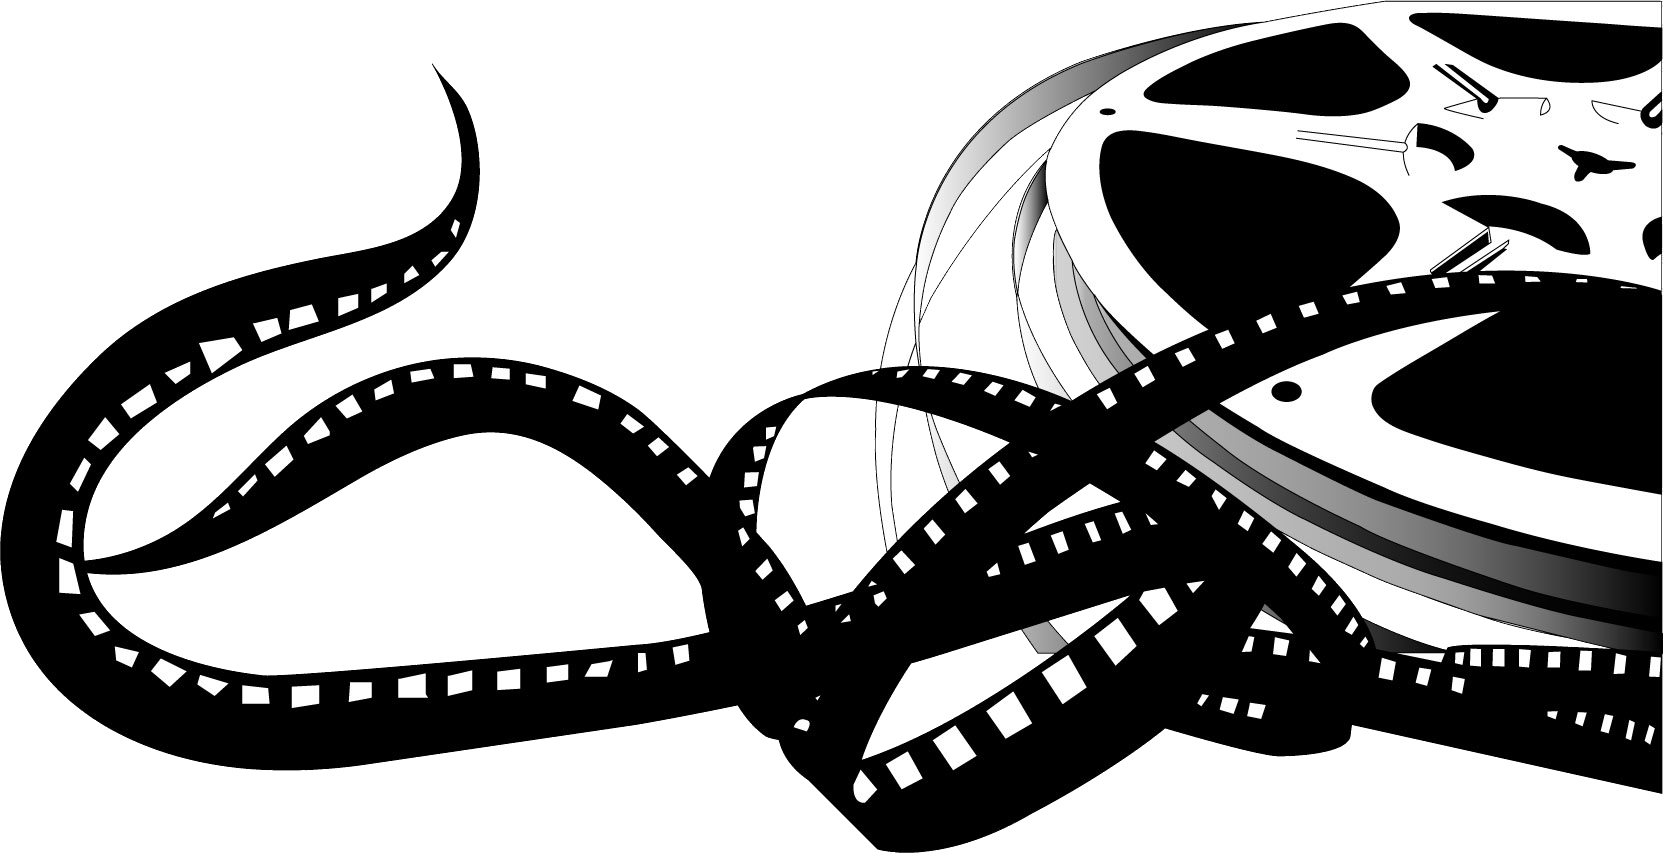 Film clipart movie hollywood. Reel clip art movies